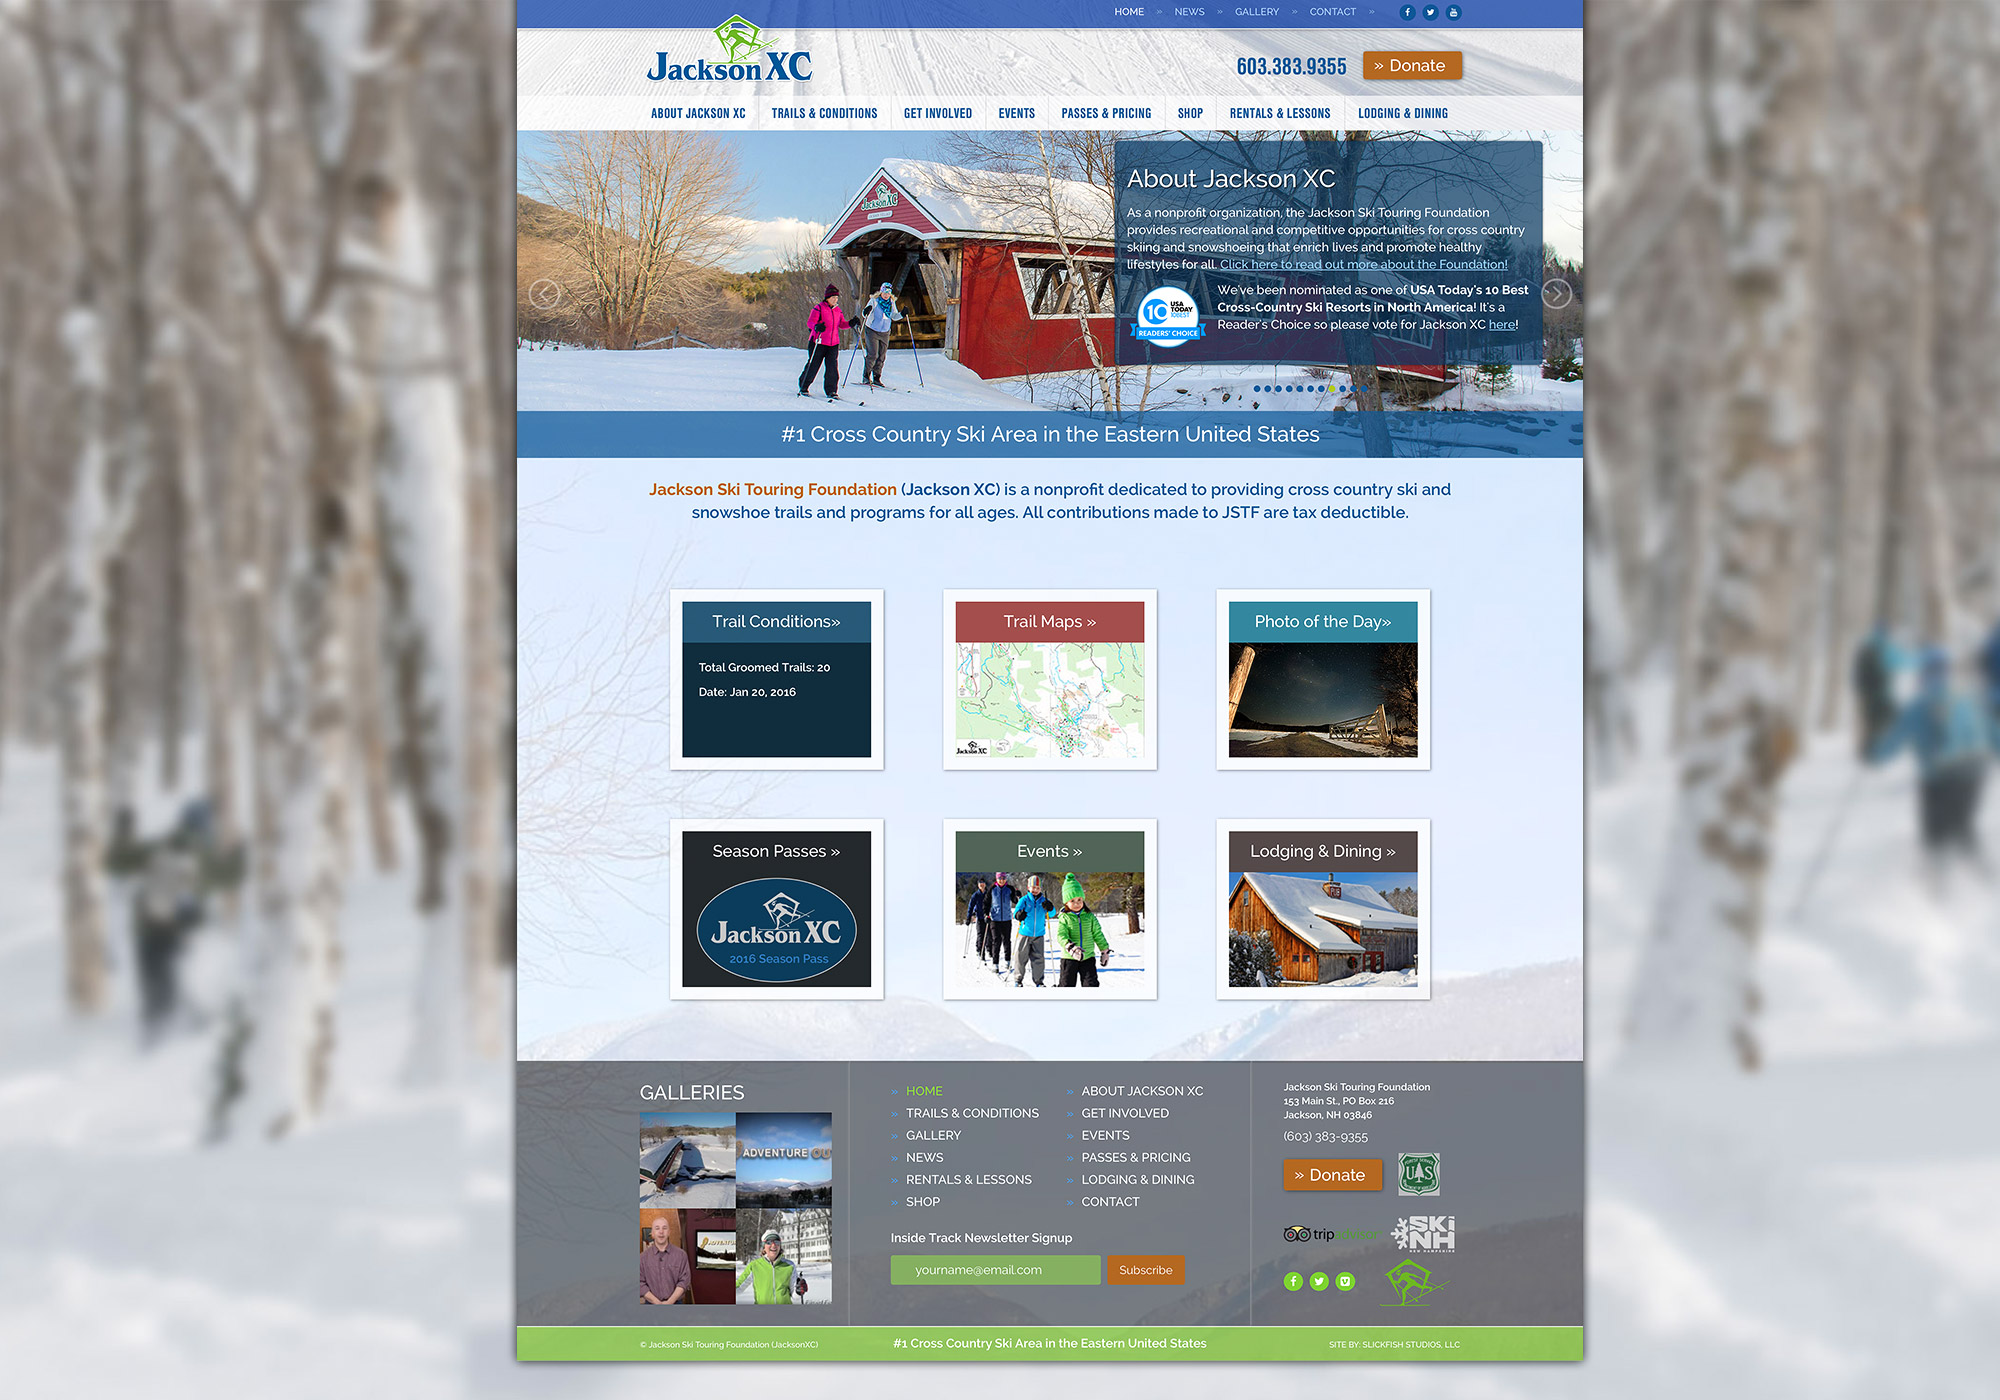 A closer look at the homepage of the Jackson XC website design by Portland company SlickFish Studios.